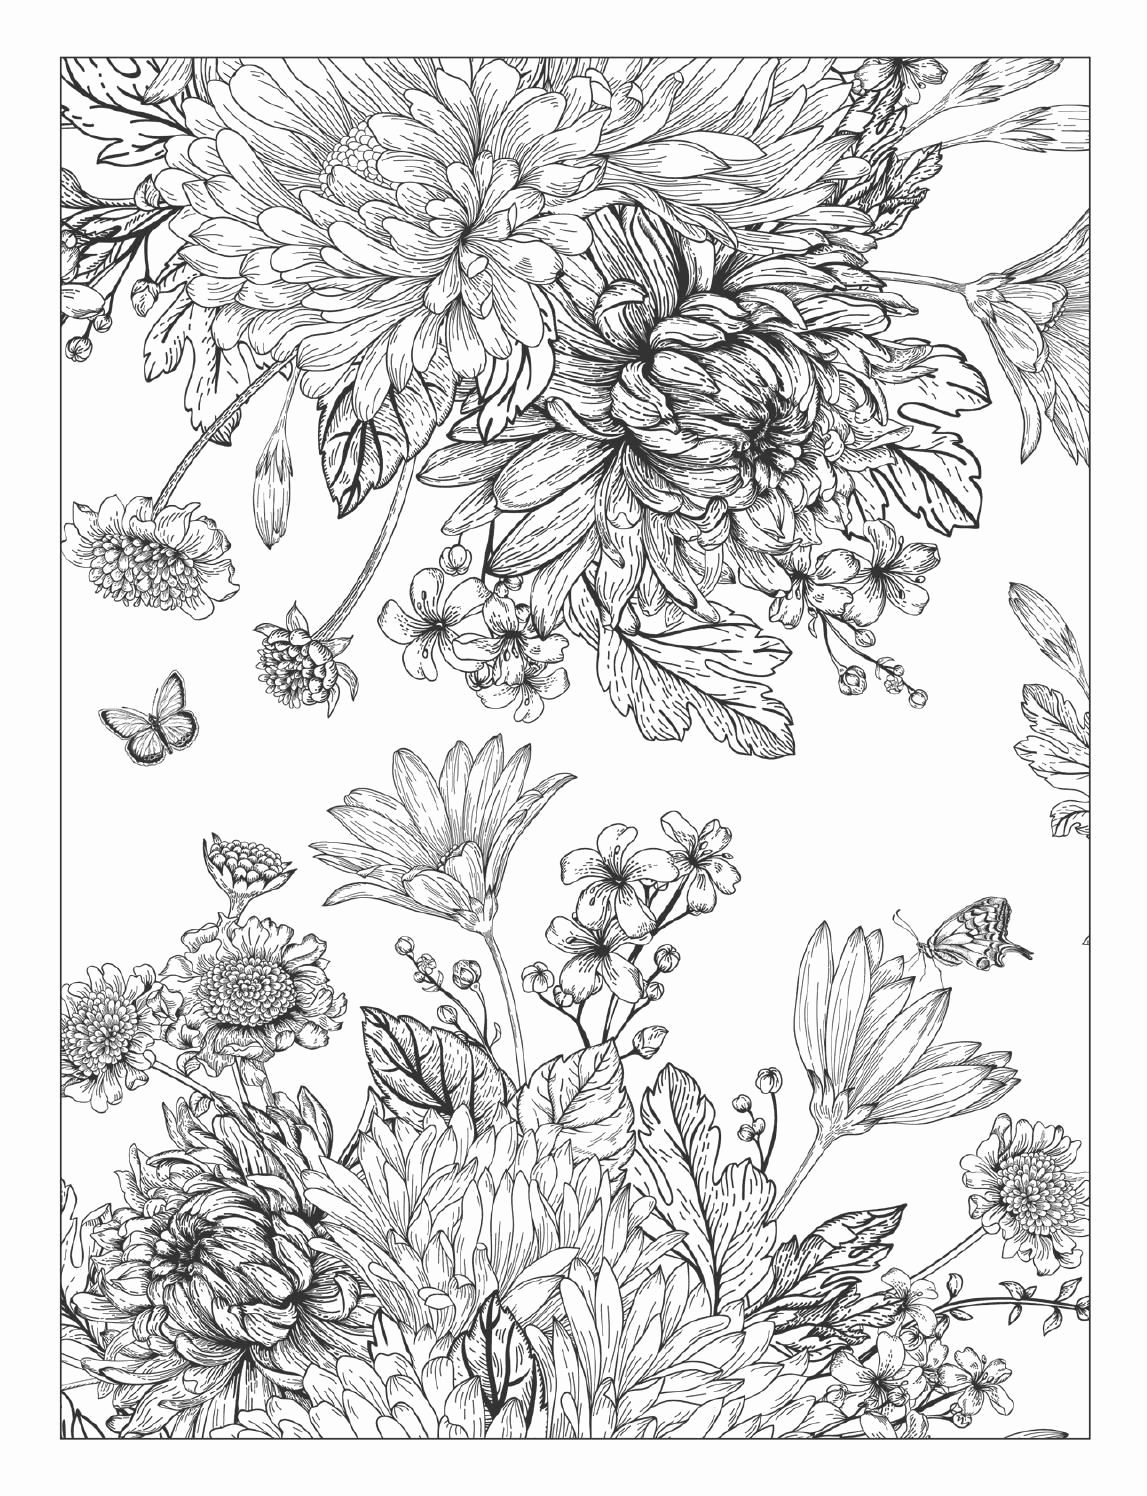 Pin By Carrie Quindry On Stencil Designs Geometric Designs Coloring Books Garden Coloring Pages Detailed Coloring Pages